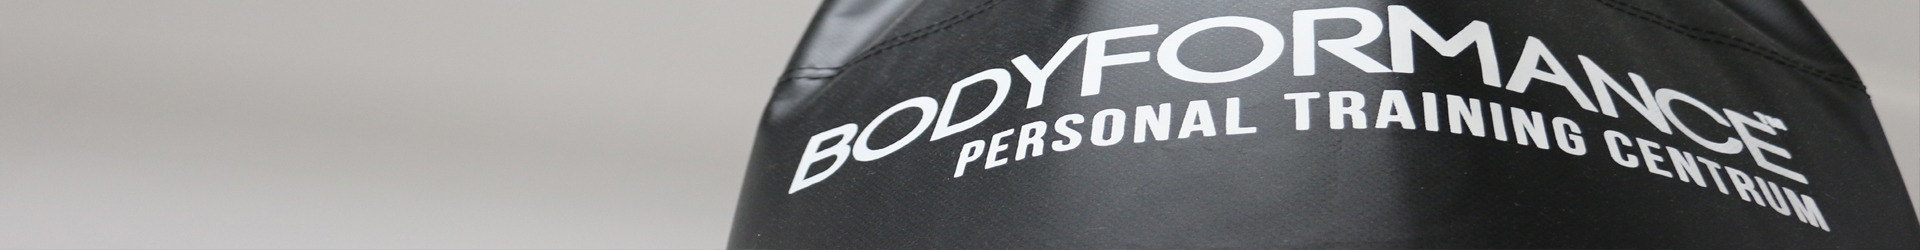 personal training centrum bodyformance